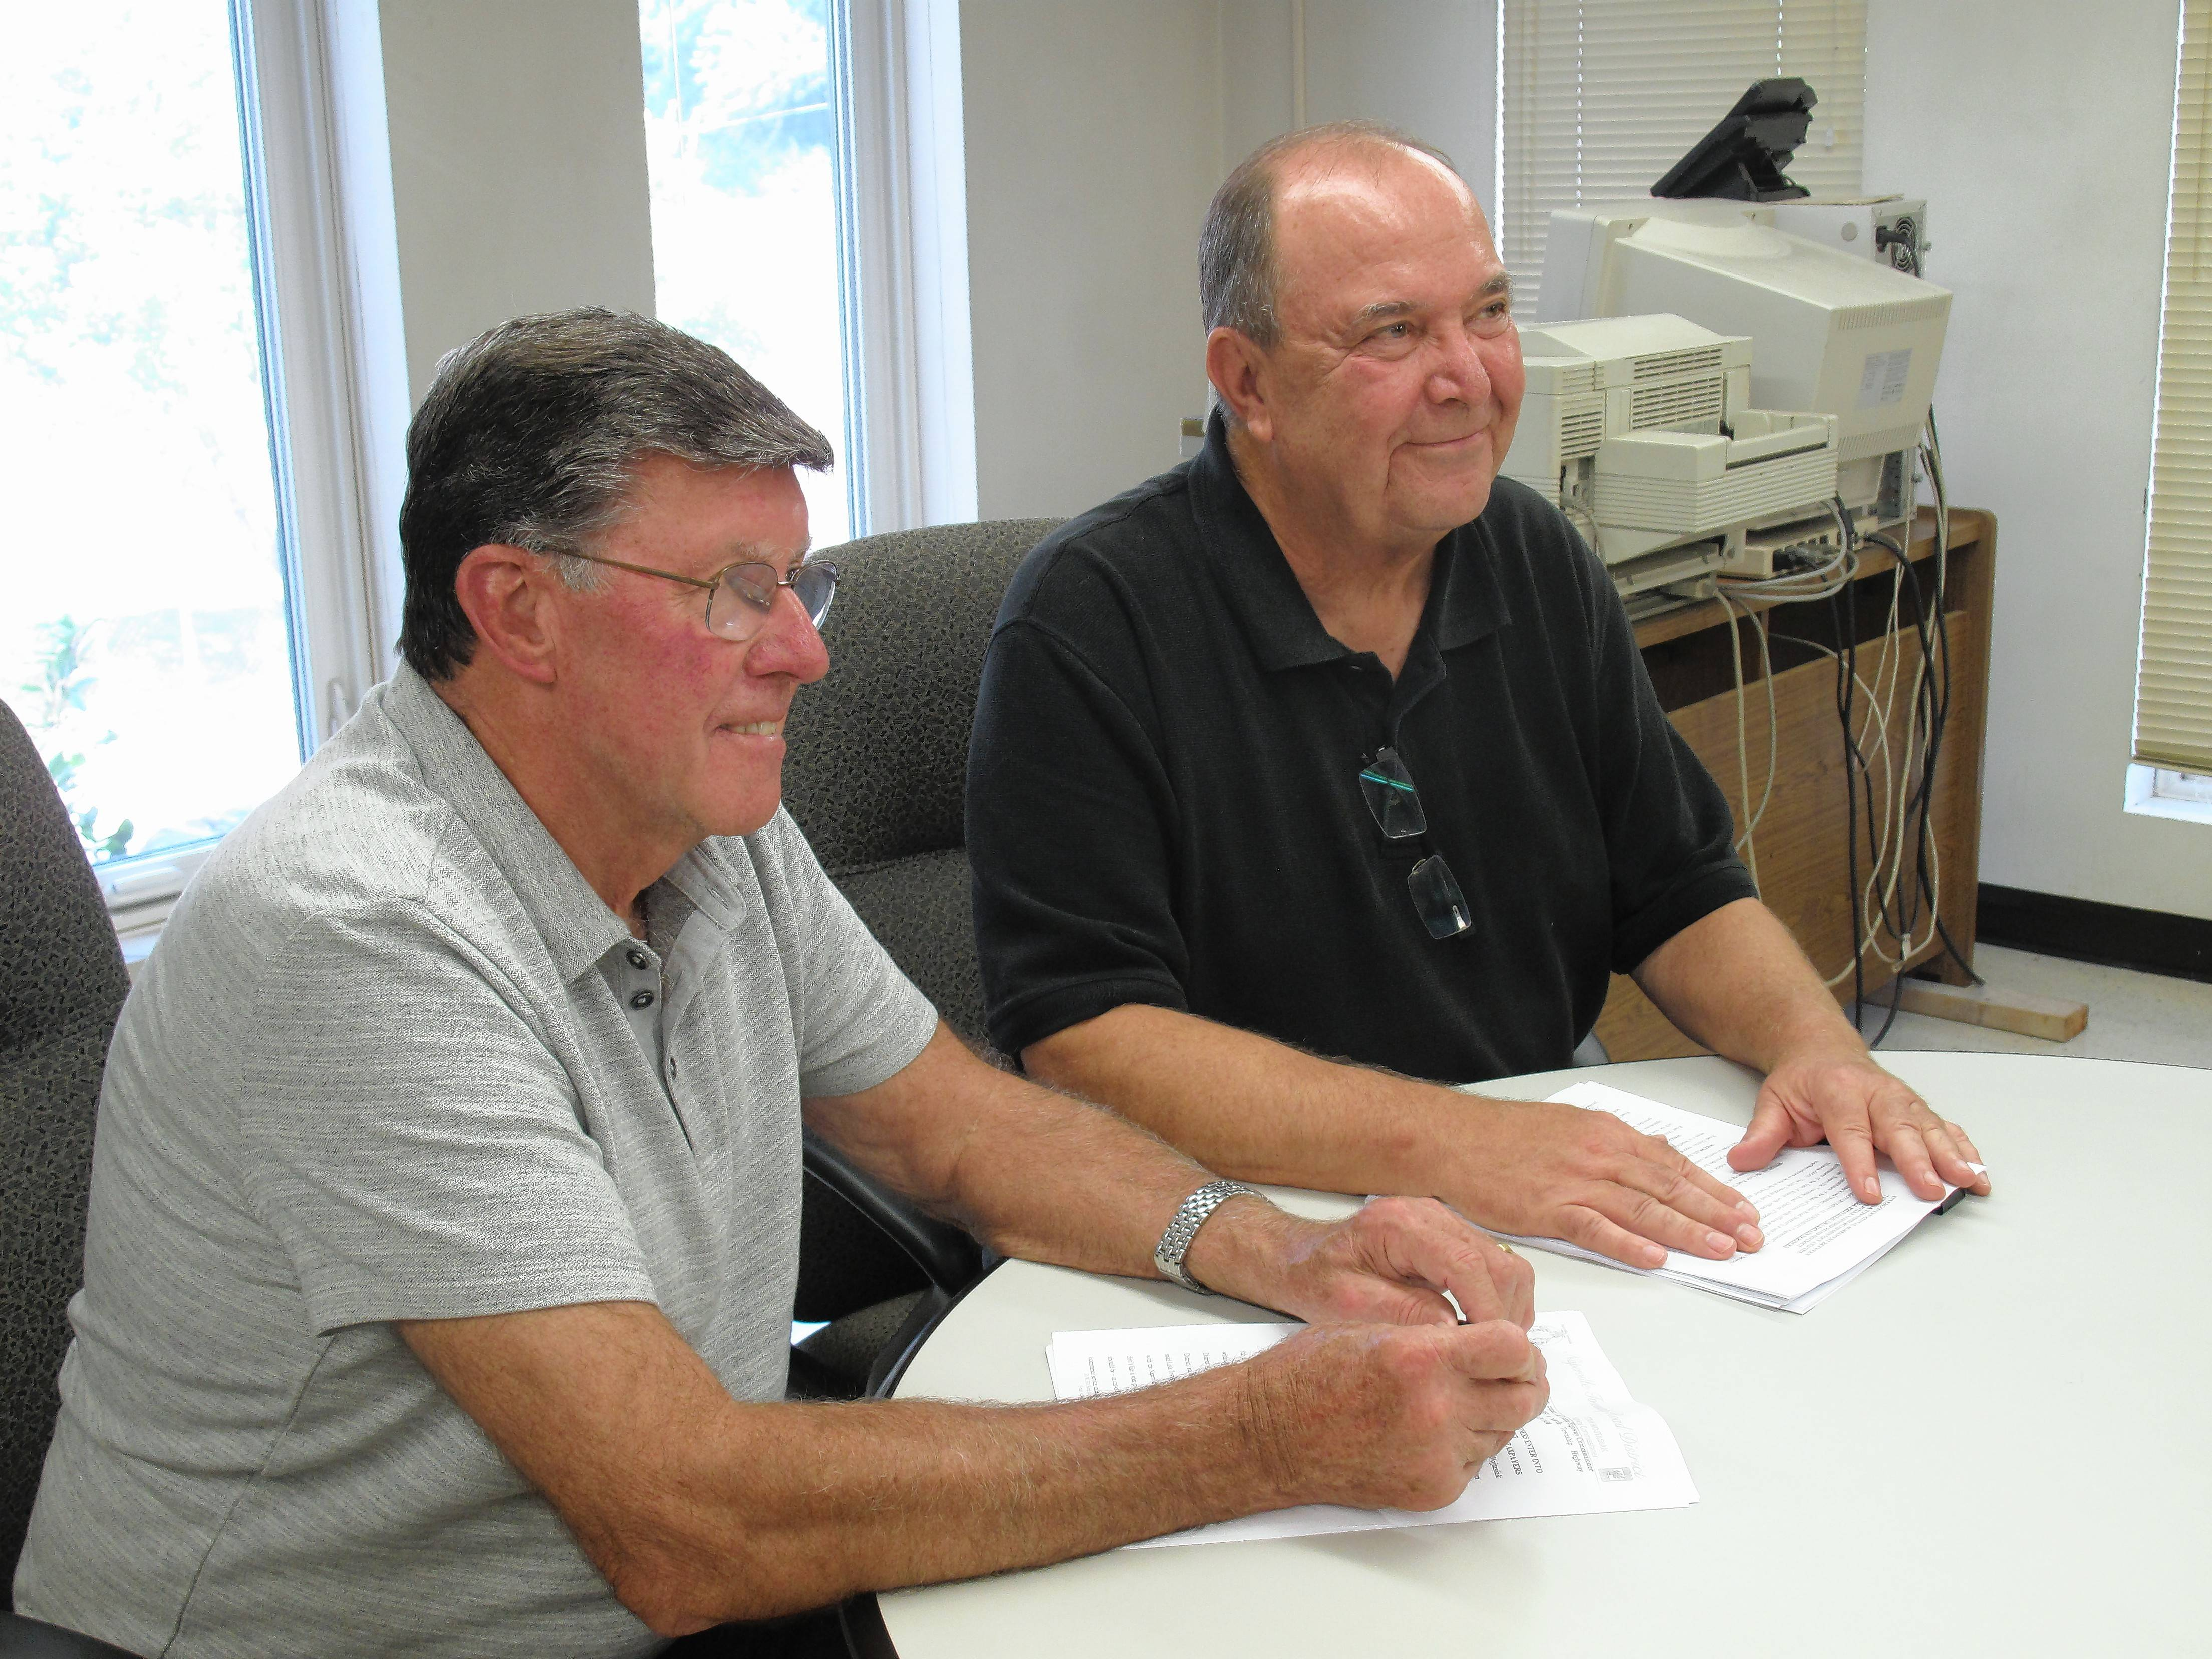 Naperville Township Highway Commissioner Stan Wojtasiak and Lisle Township Highway Commissioner Ed Young formed an agreement for the two entities to cooperate on road services that began in August 2016 and was to last through this June. But Wojtasiak was voted out of office and his successor canceled the agreement, creating uncertainties for the process of officially combining the two road districts into one by 2021.